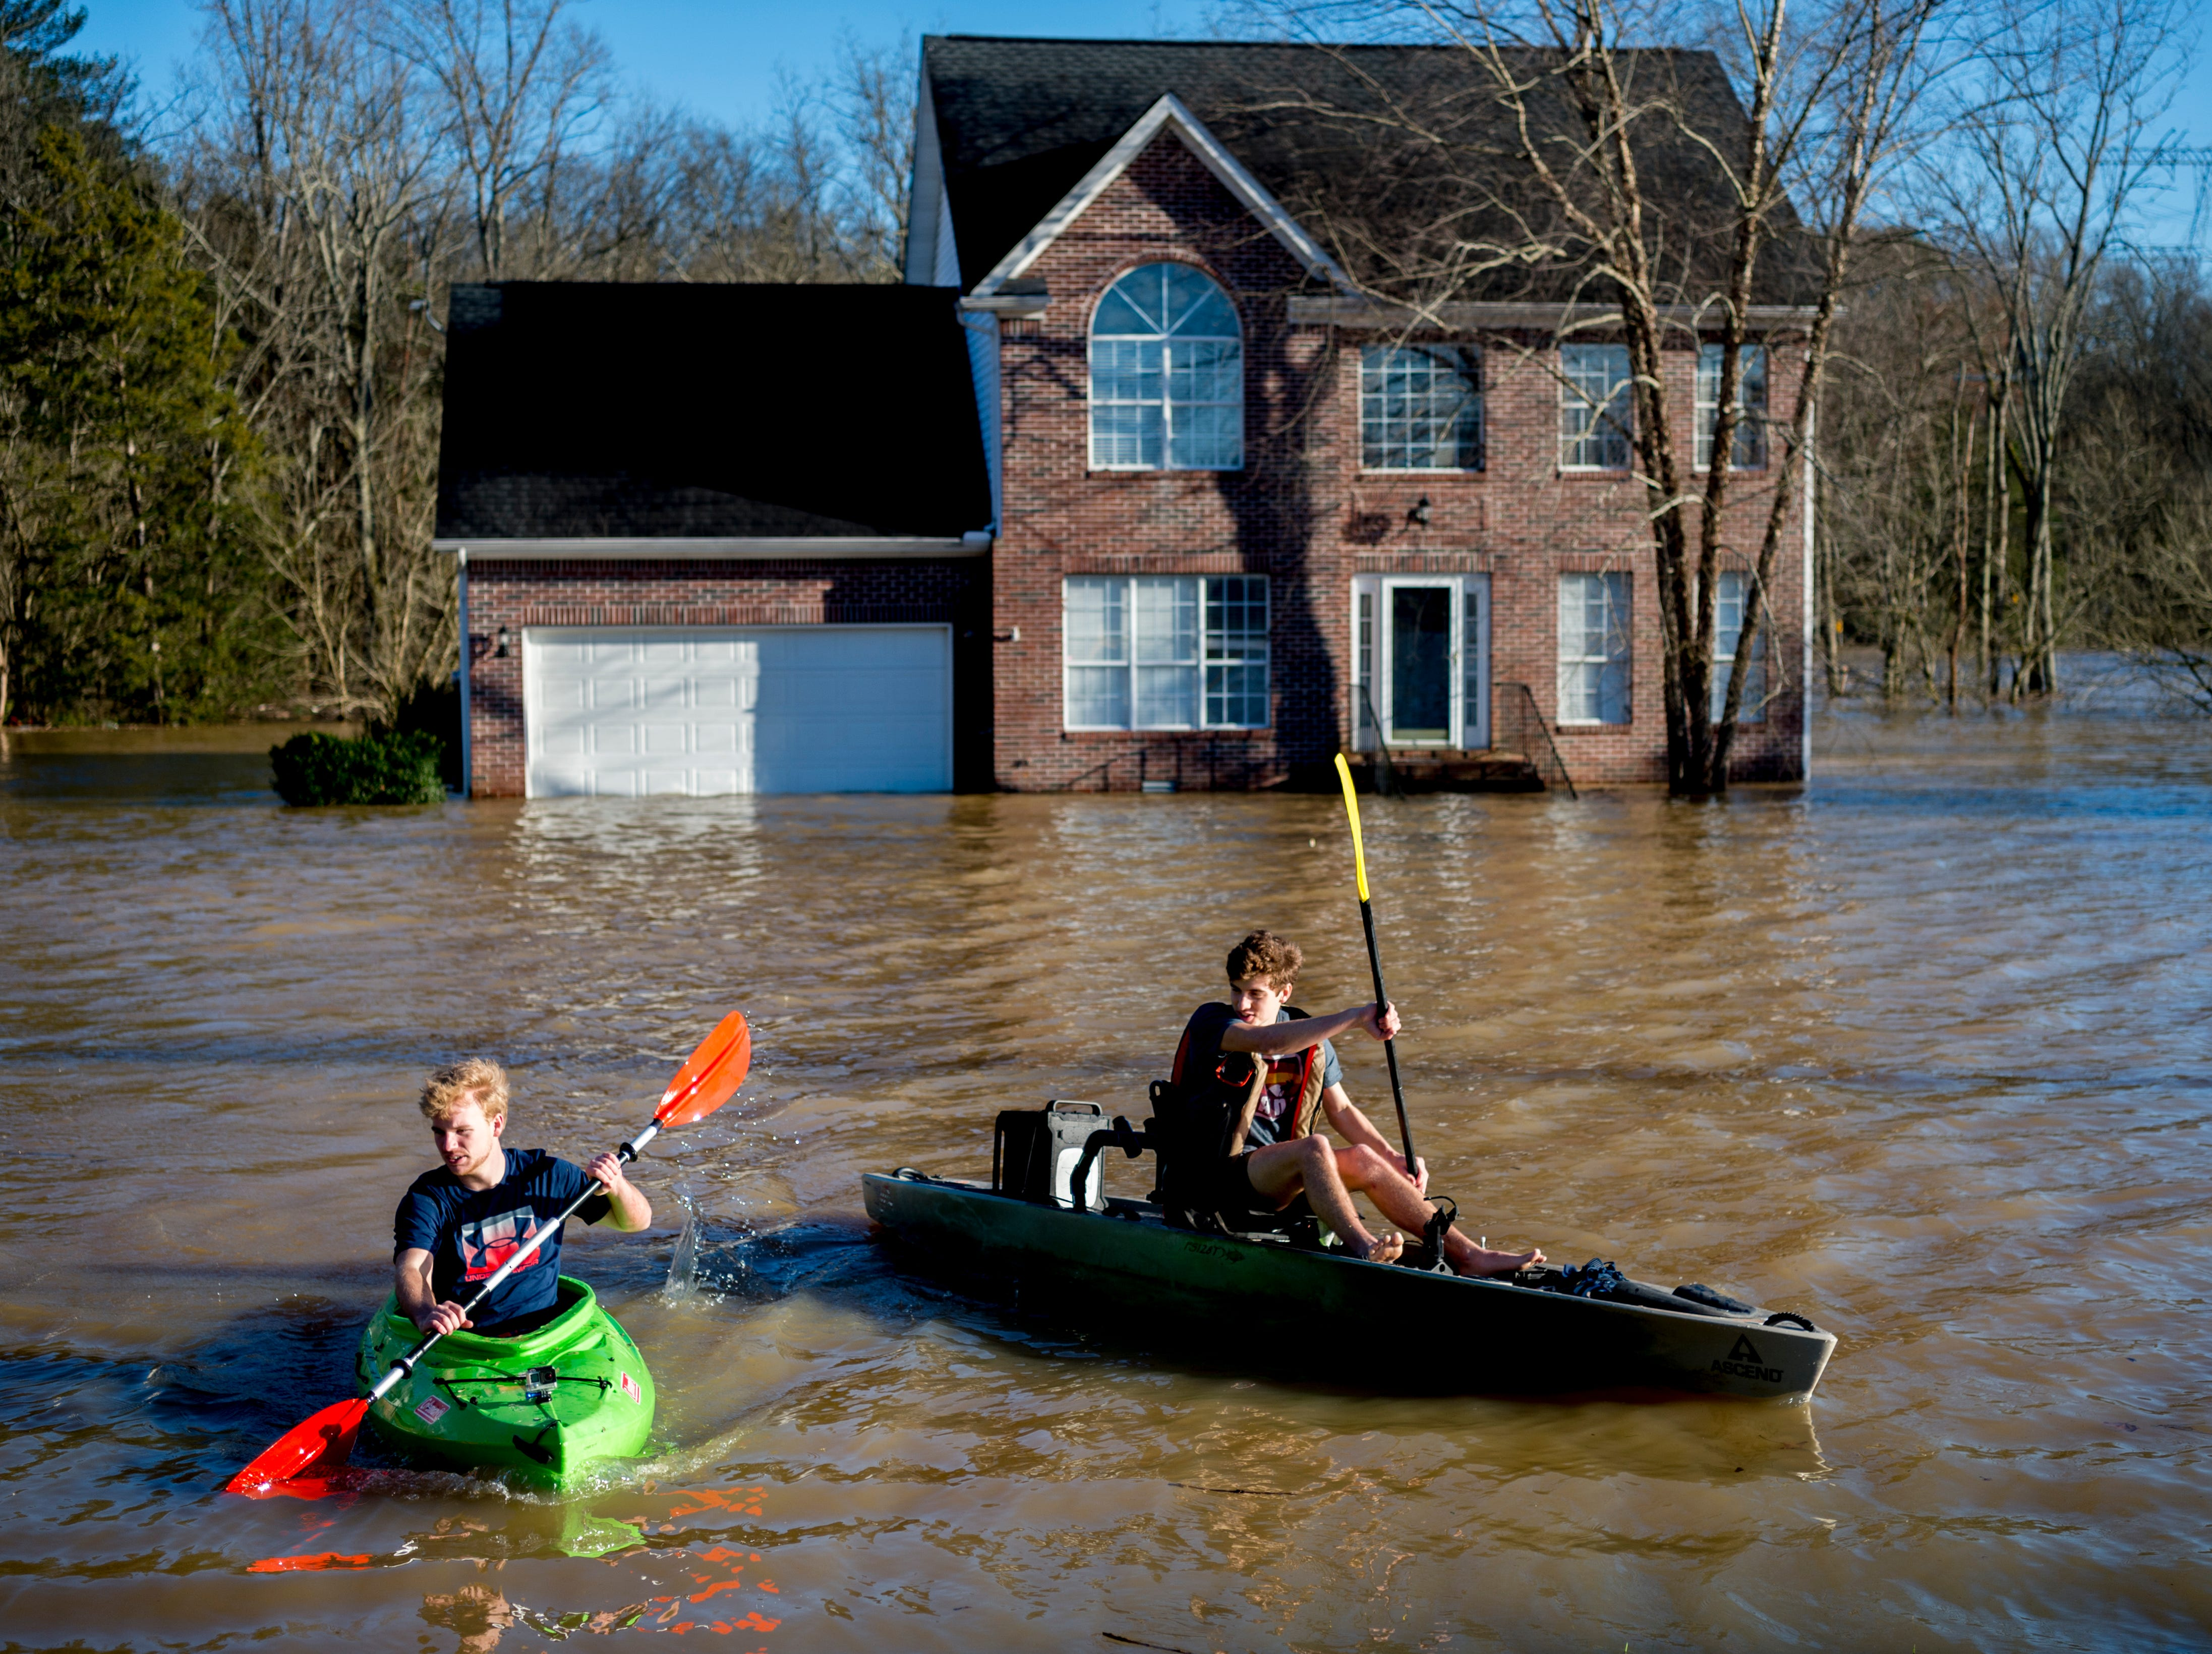 Truman Douglass and James Webster, both from Knoxville, pass by a flooded home next to the Sunoco on Ebenezer Road and Gleason Drive in Knoxville, Tennessee on Sunday, February 24, 2019.